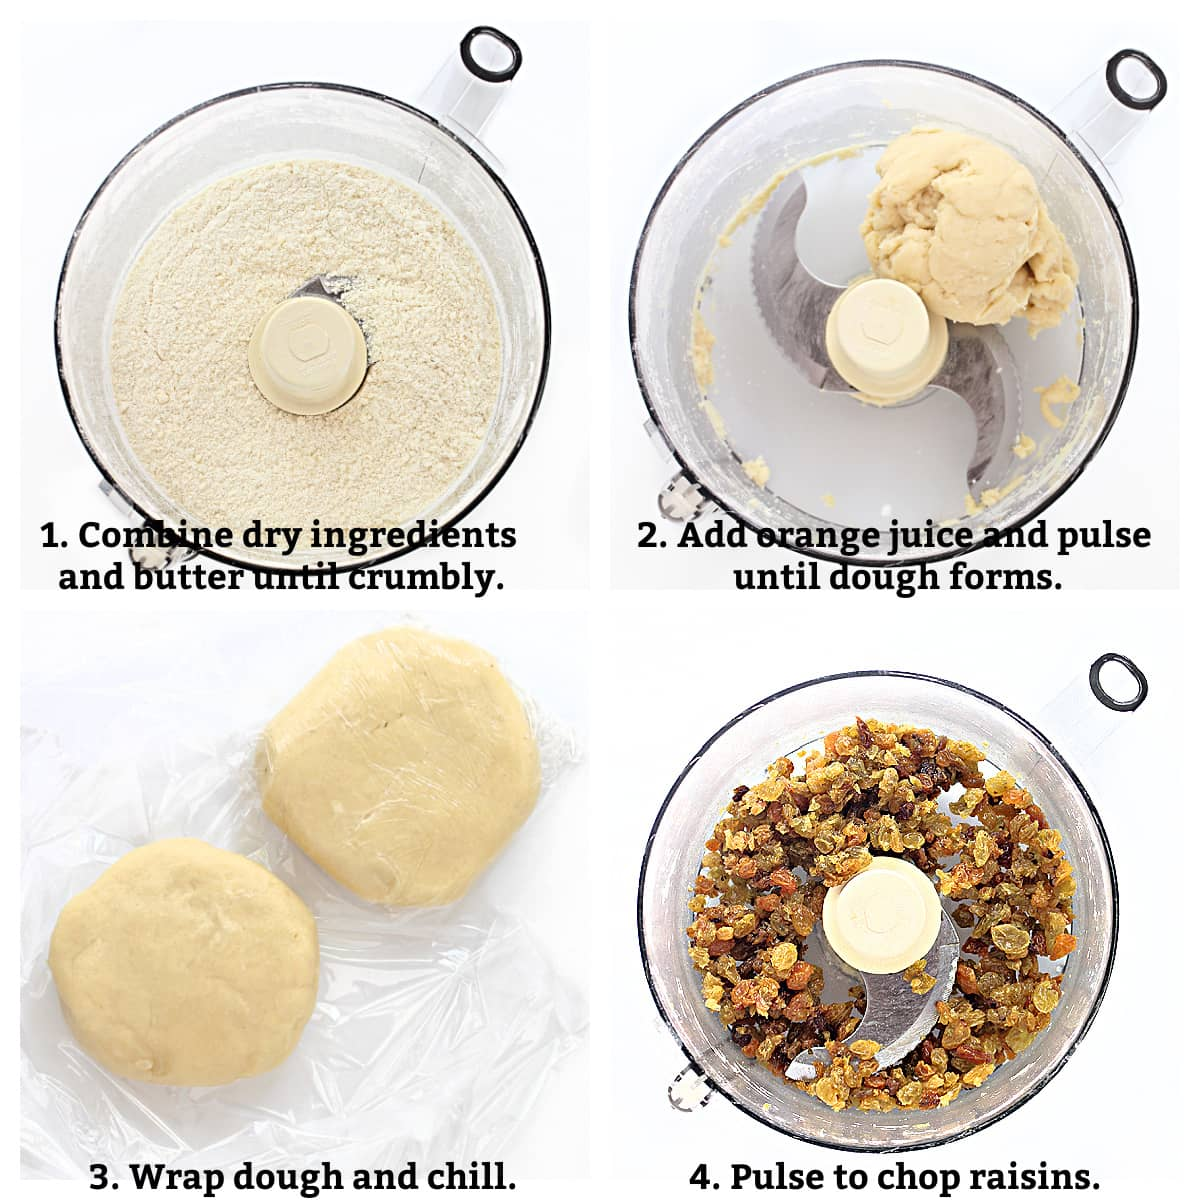 Recipe process; combine ingredients to form dough, wrap and chill dough, chop raisins.